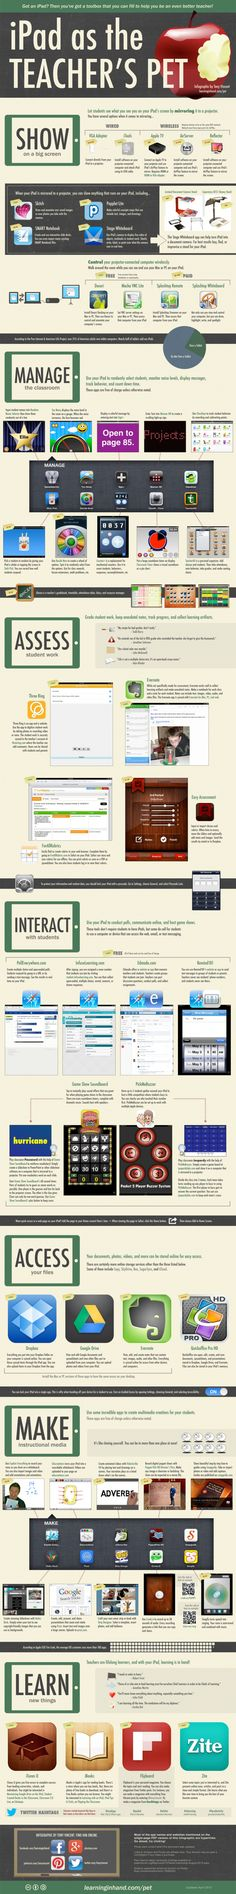 The iPad as the Teachers Pet Infographic